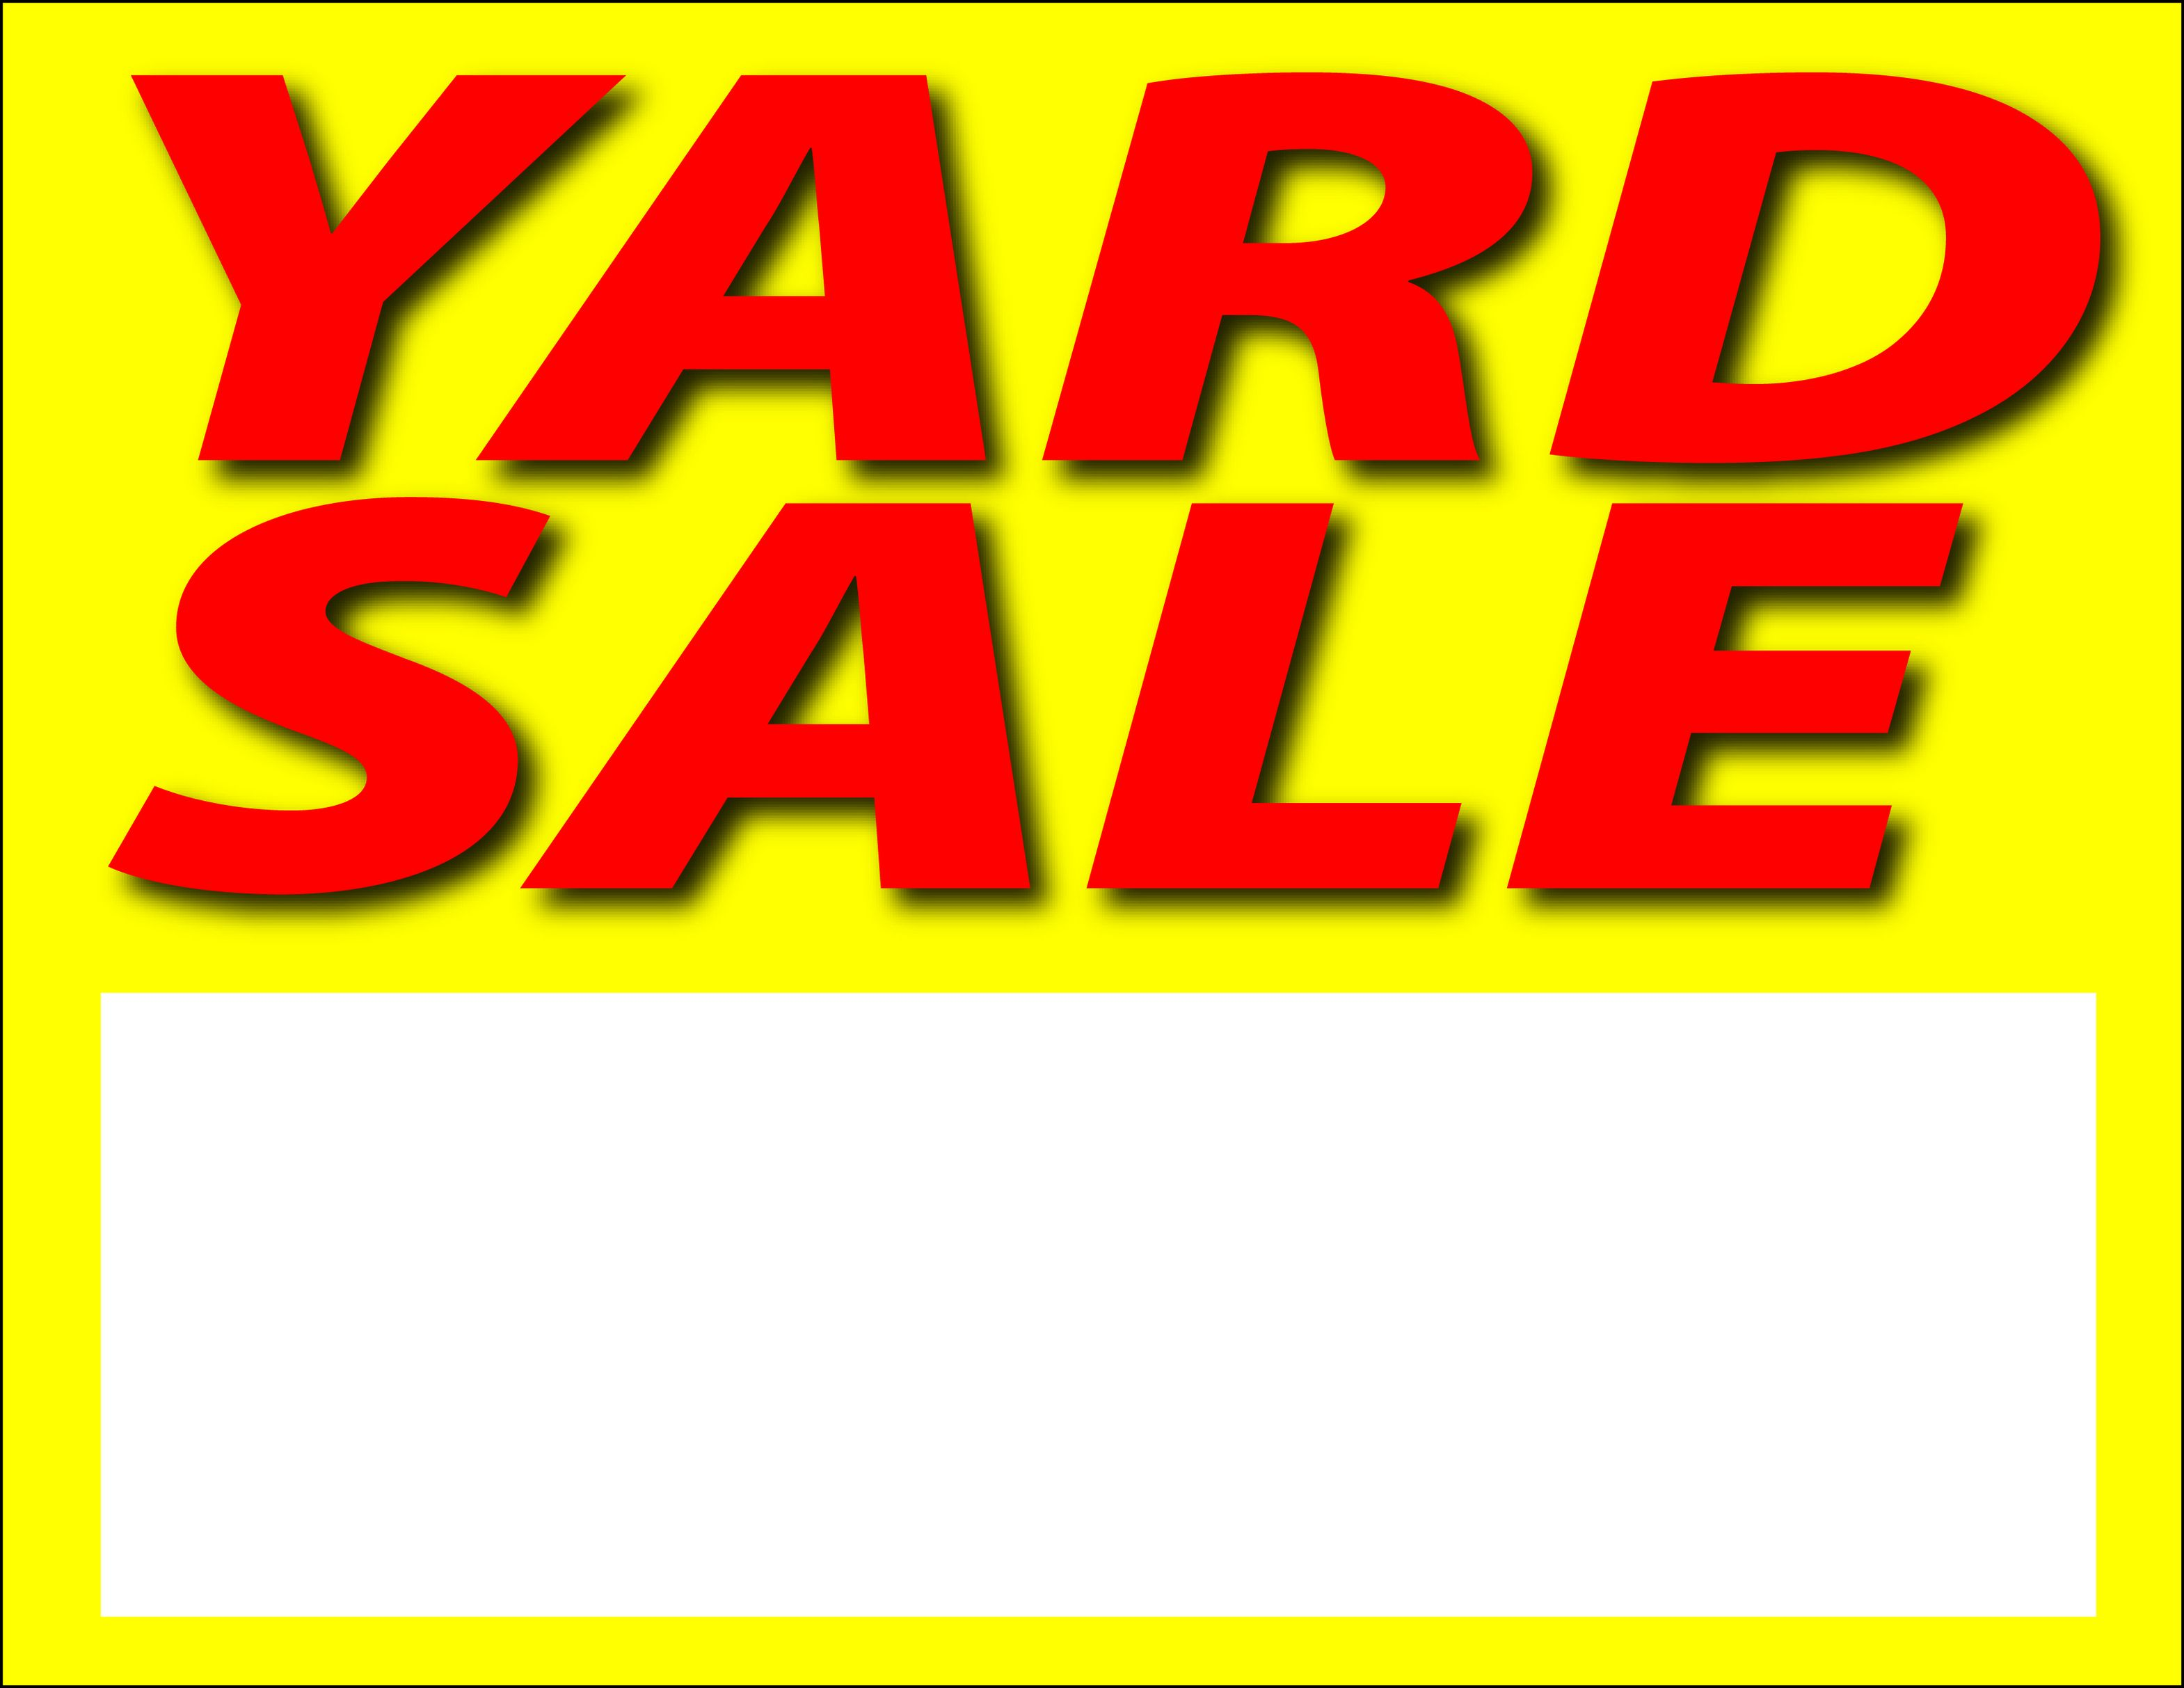 photo regarding Printable Garage Sale Signs titled Pictures for printable garden sale signal clipart free of charge in the direction of hire clip